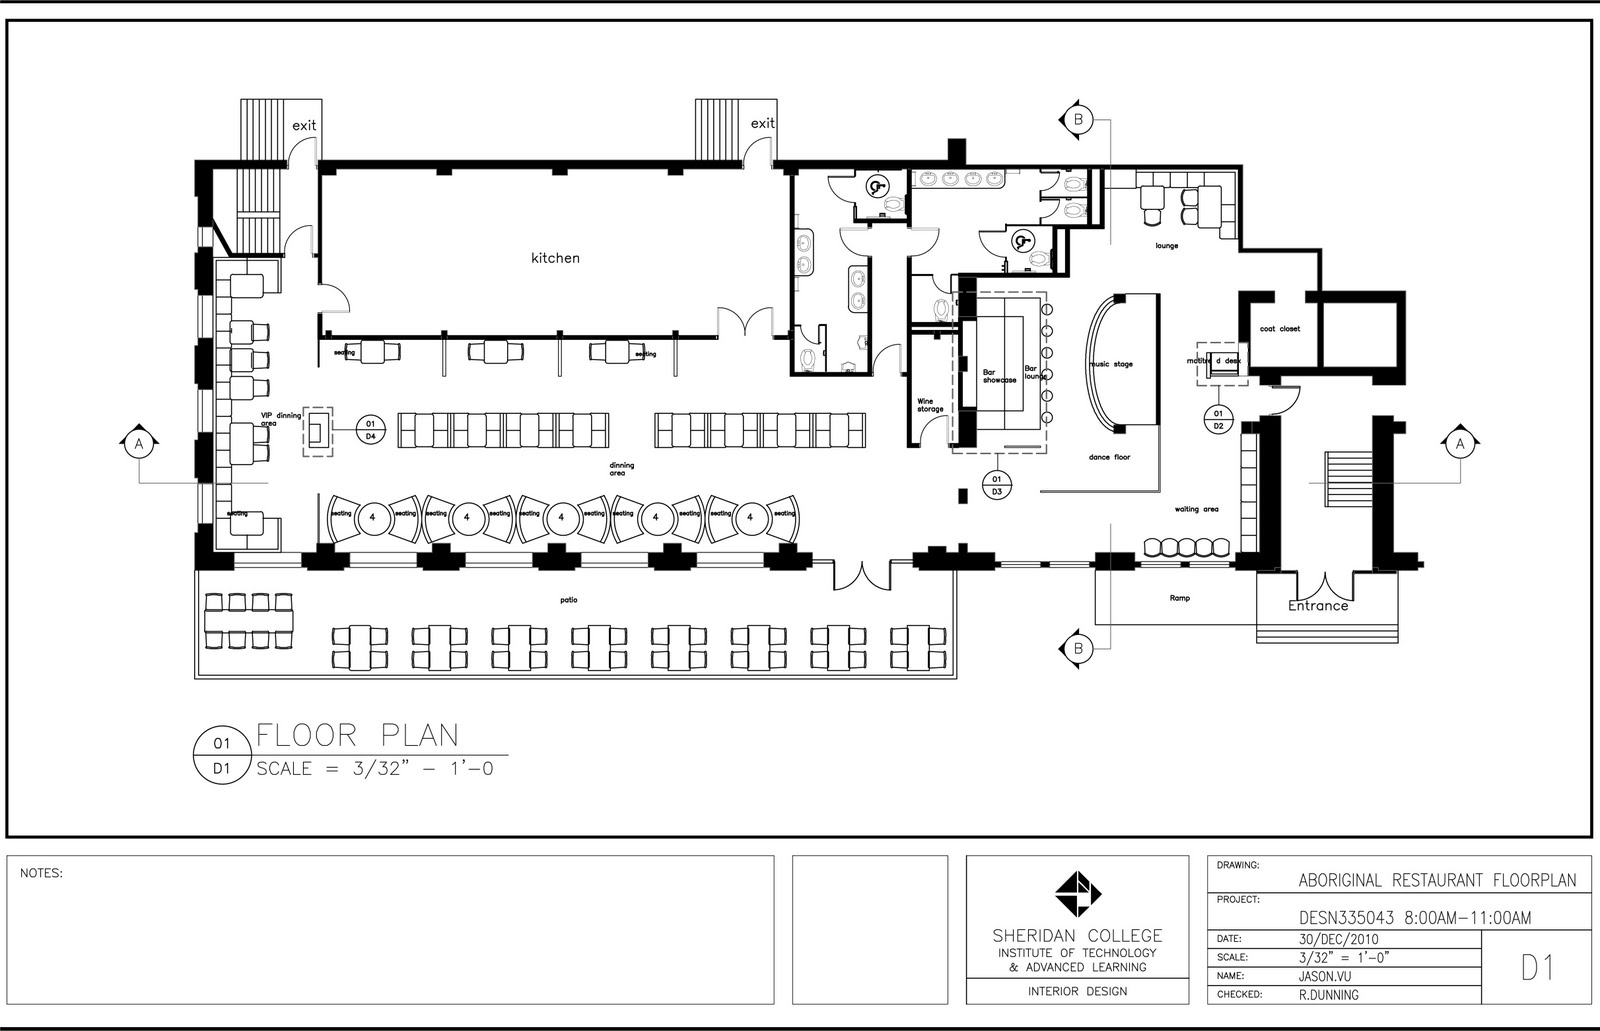 Restaurant floor plans home design and decor reviews for Restaurant layout